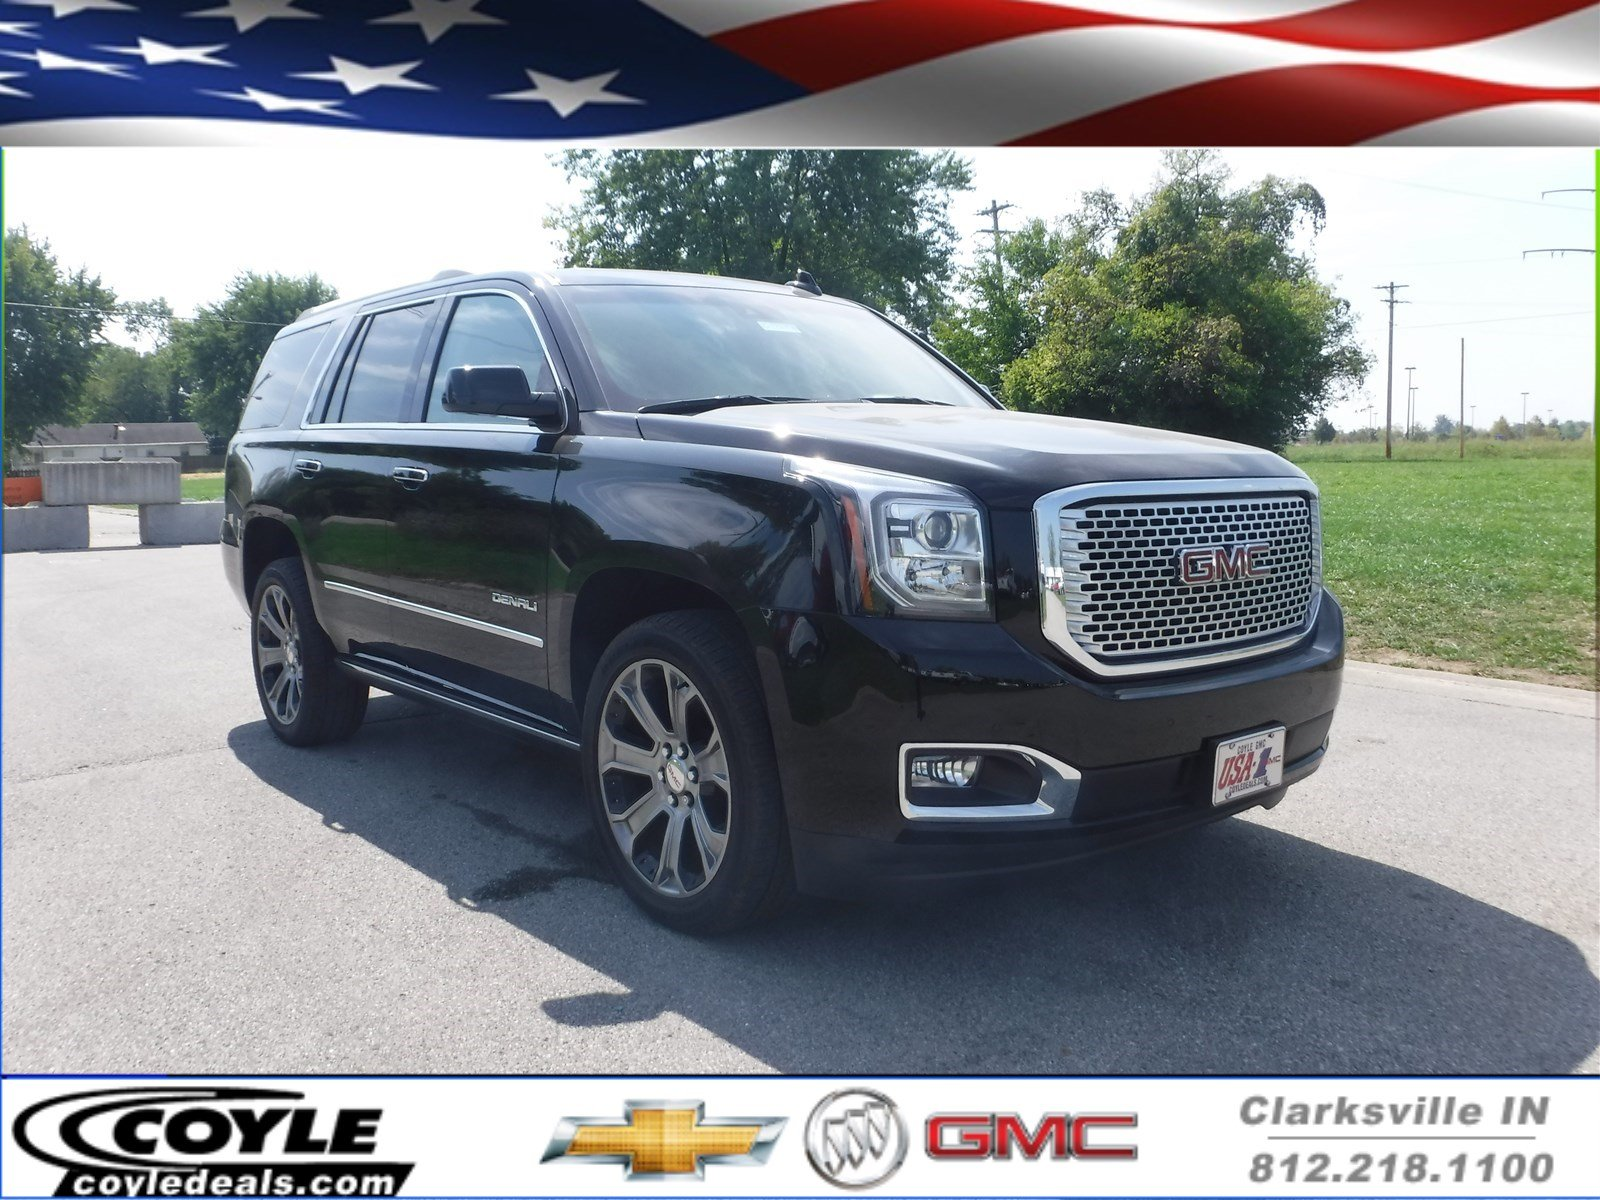 yukon tahoe bang gmc denali big wheels